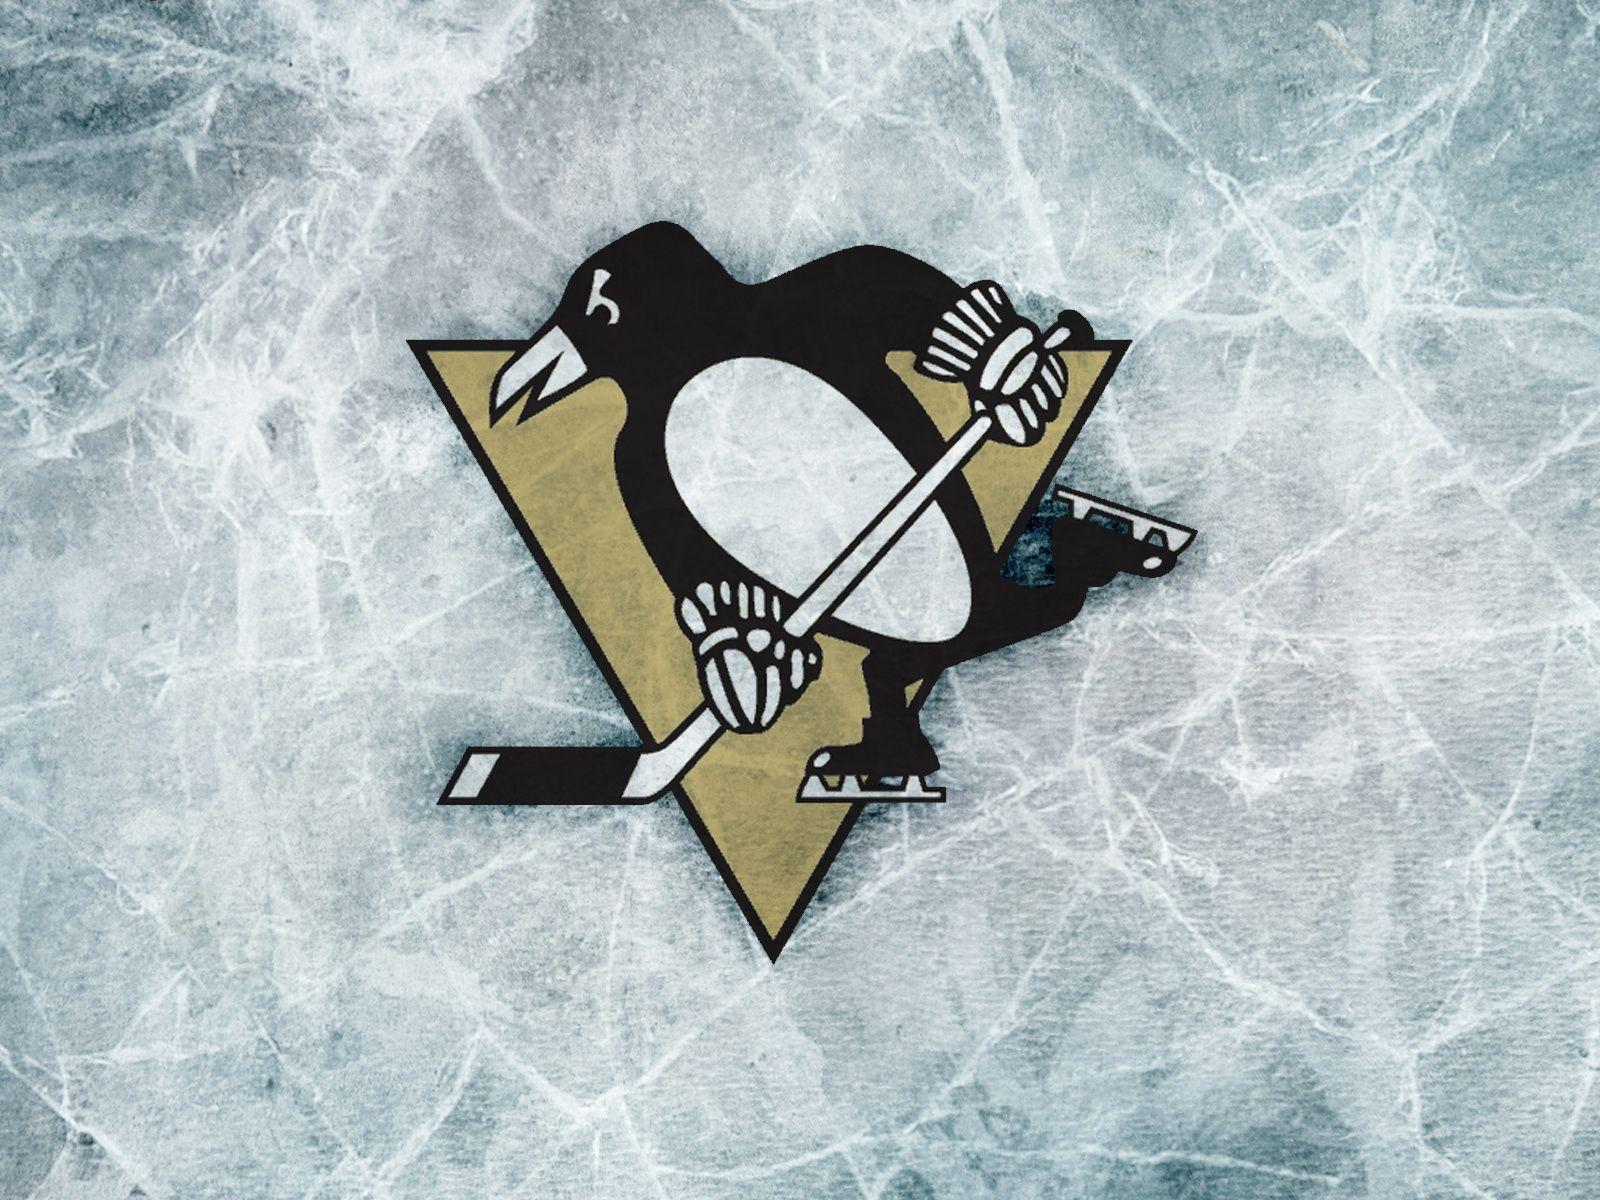 Pittsburgh Penguins Backgrounds - Wallpaper Cave